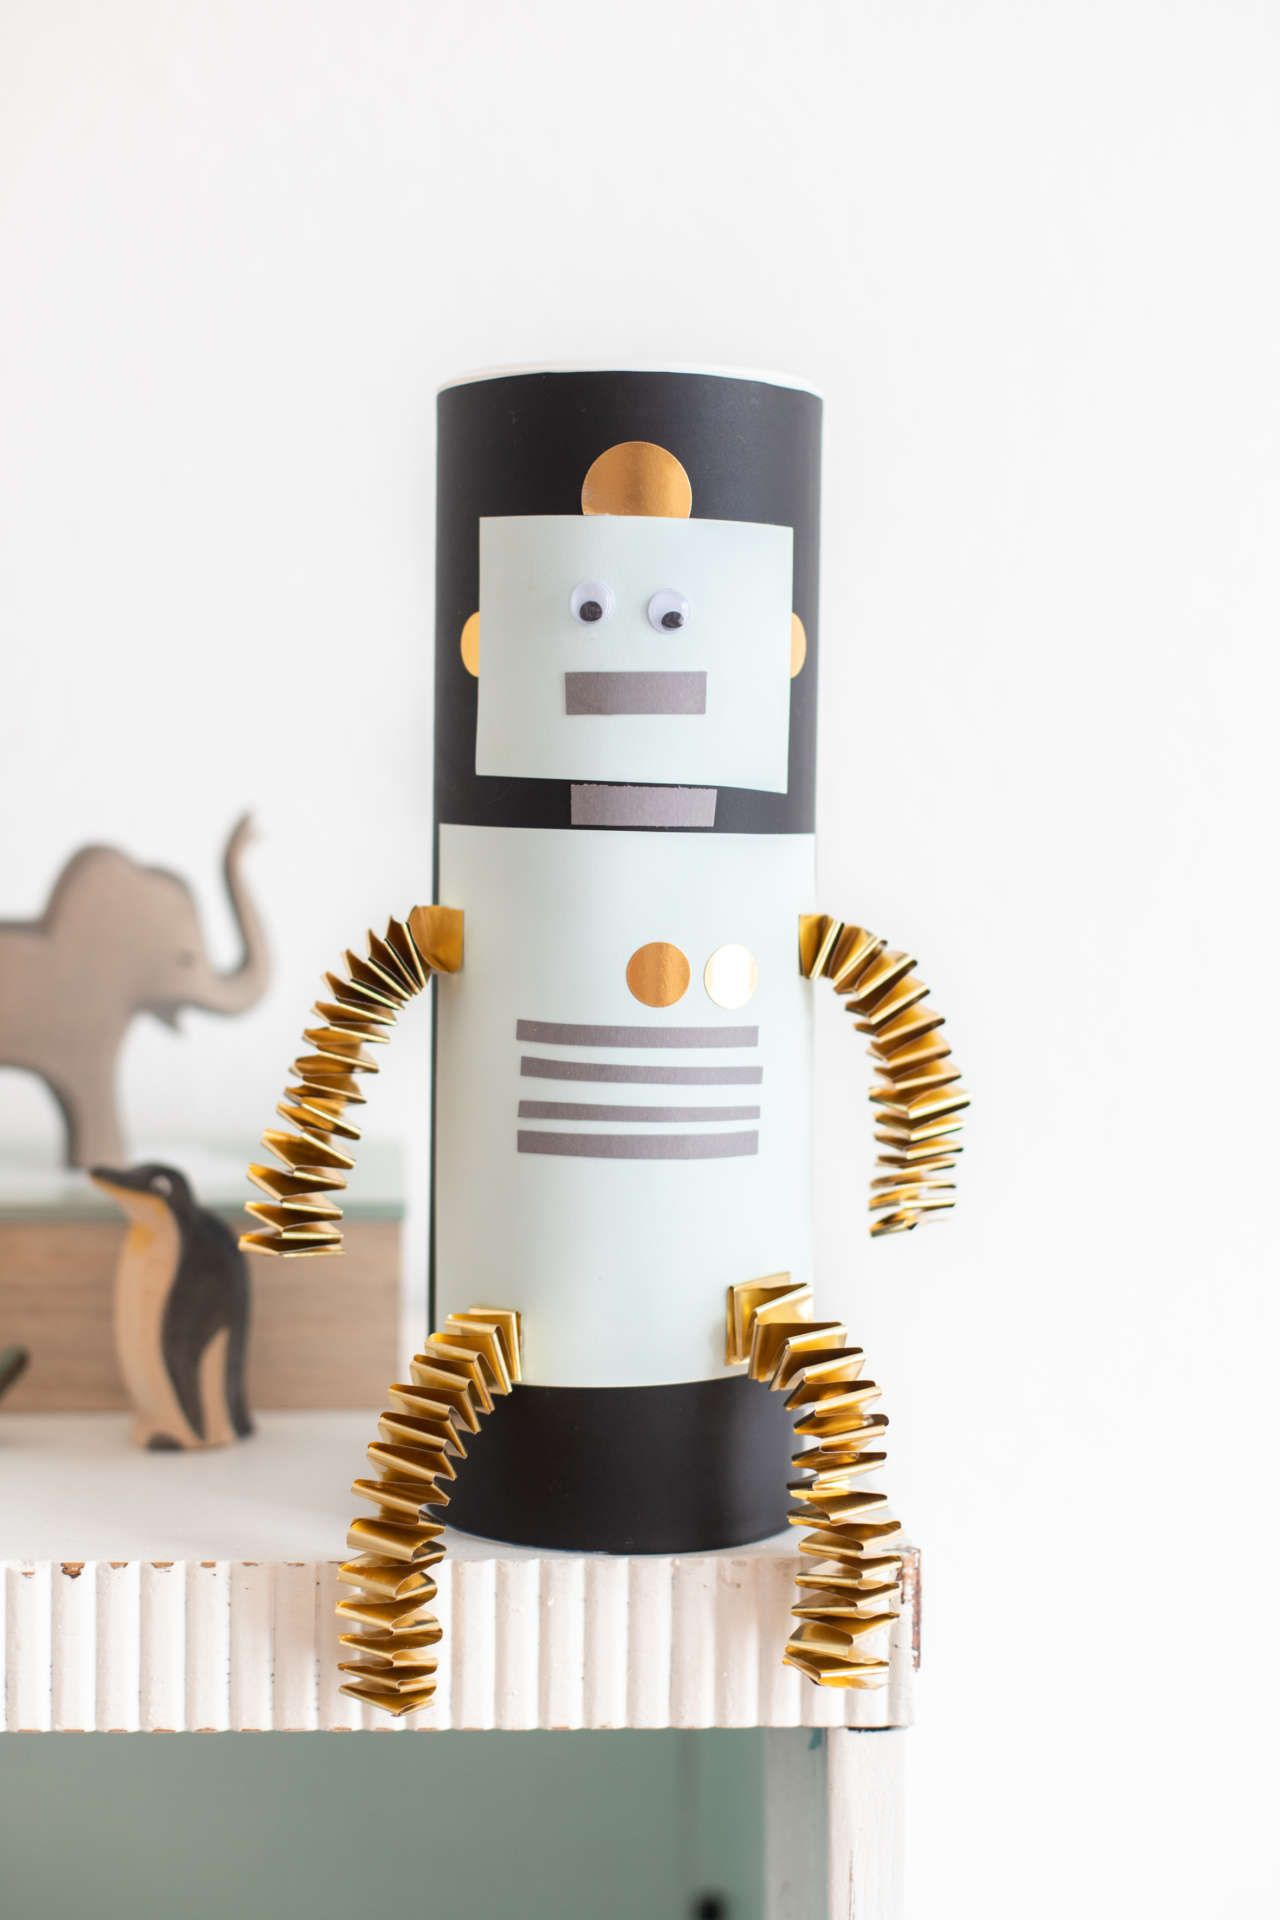 Upcycling Ideen Kinder Upcycling Idee: Roboter Dose Für Kids | Upcycling Ideen, Upcycled Crafts, Kinder Basteln Diy